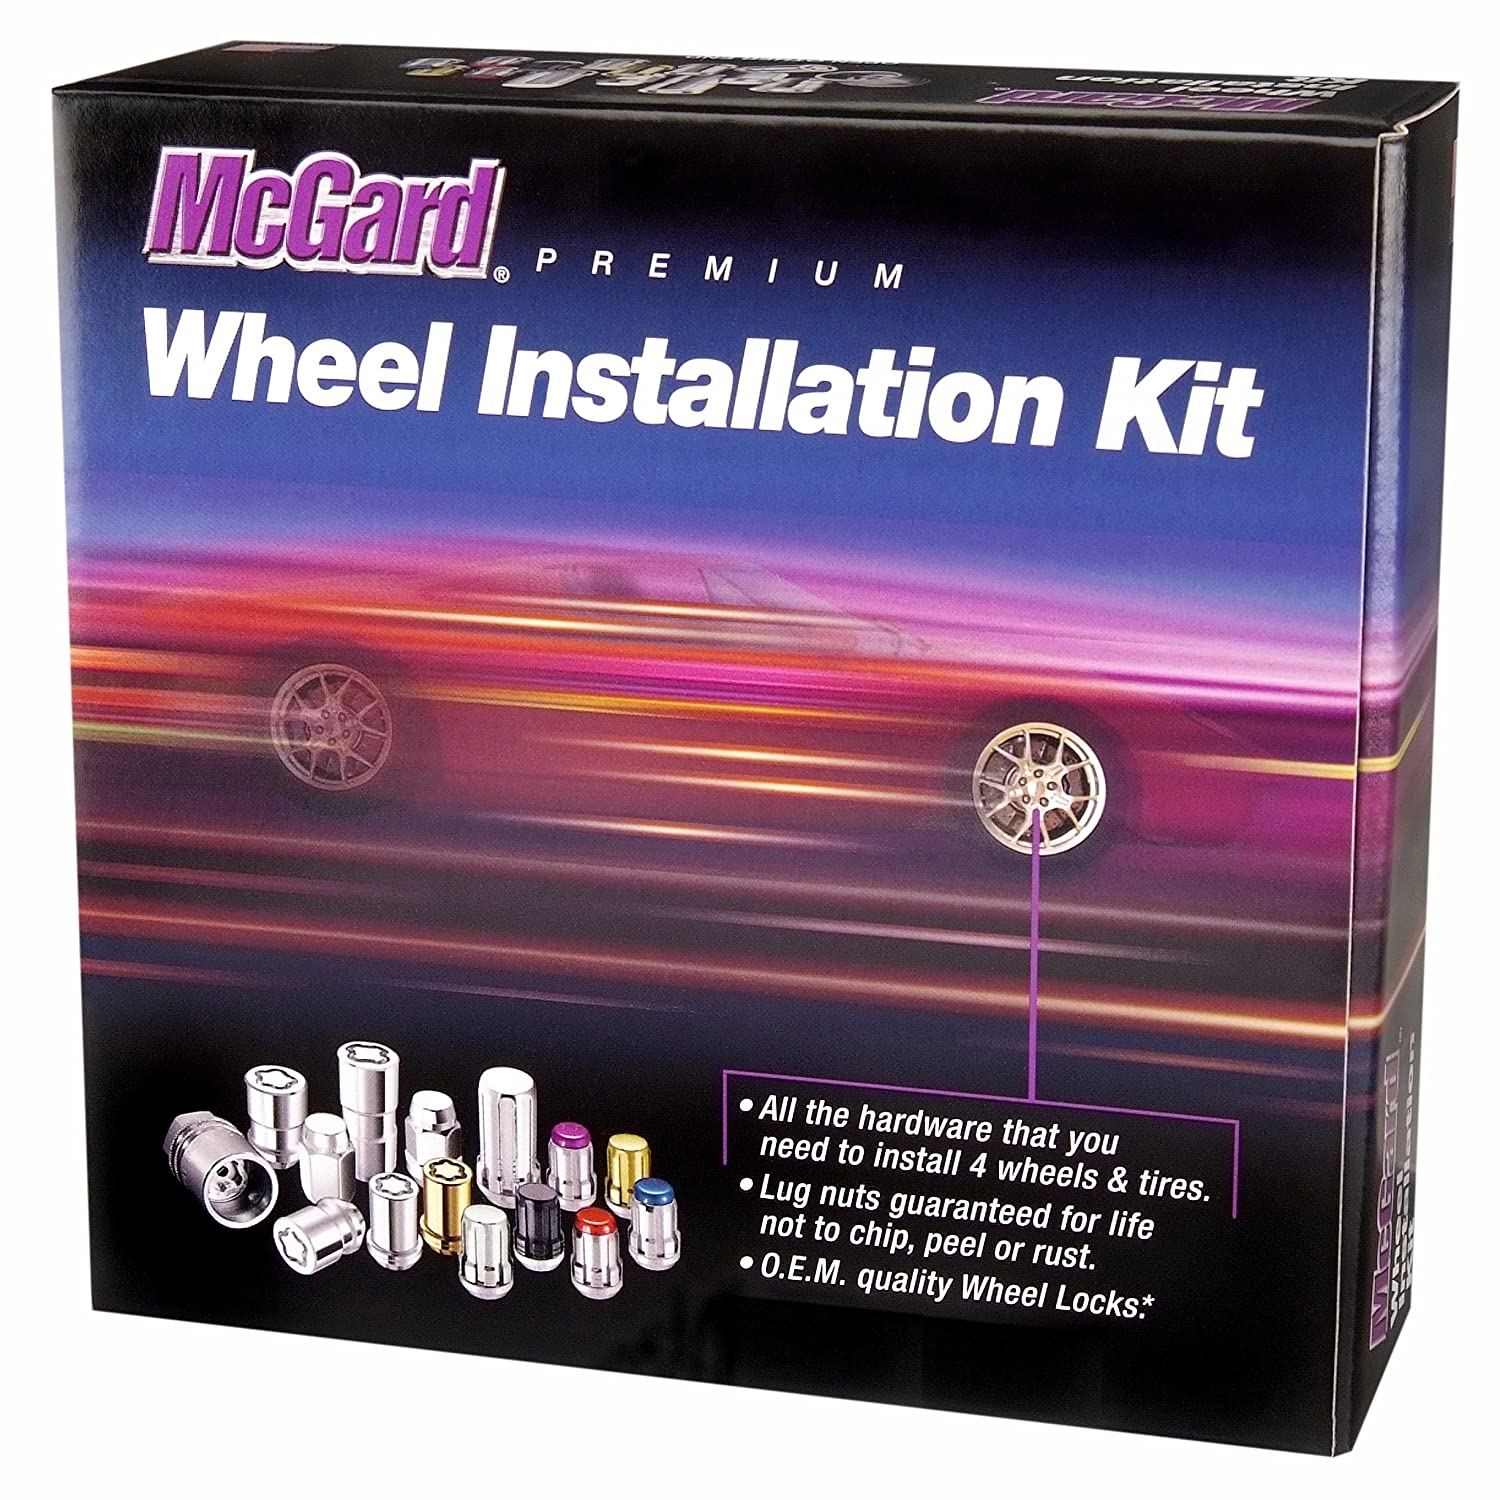 Cone Seat Wheel Installation Kit for 8-Lug Wheels M14 x 1.5 Thread Size McGard 84825 Chrome